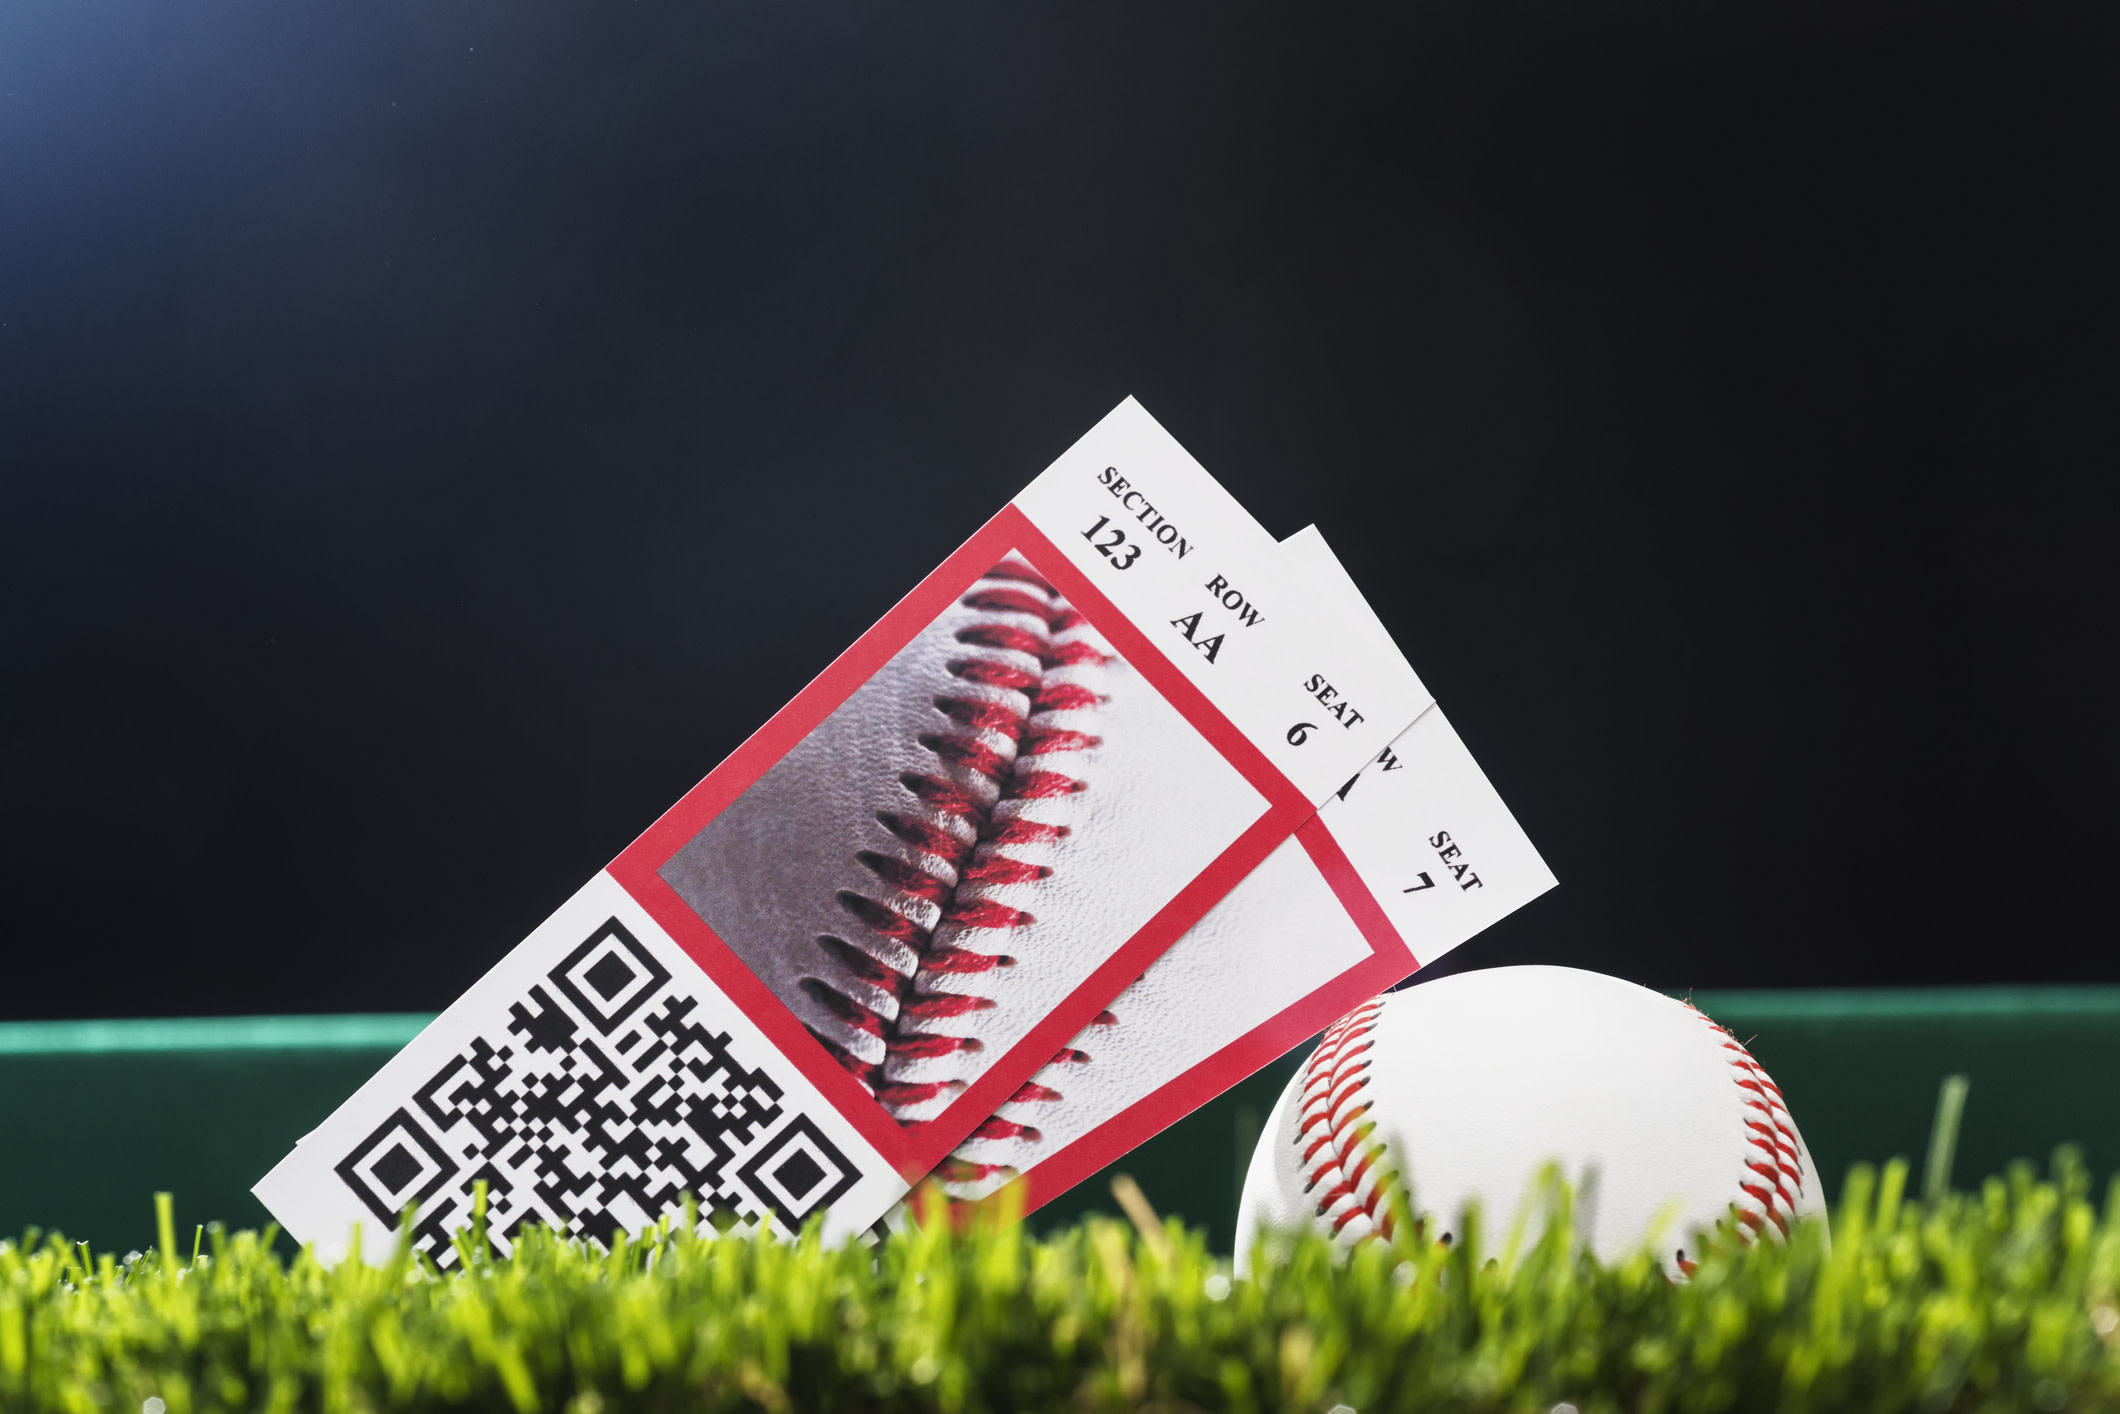 5 Clever Ways To Save Money On Baseball Tickets